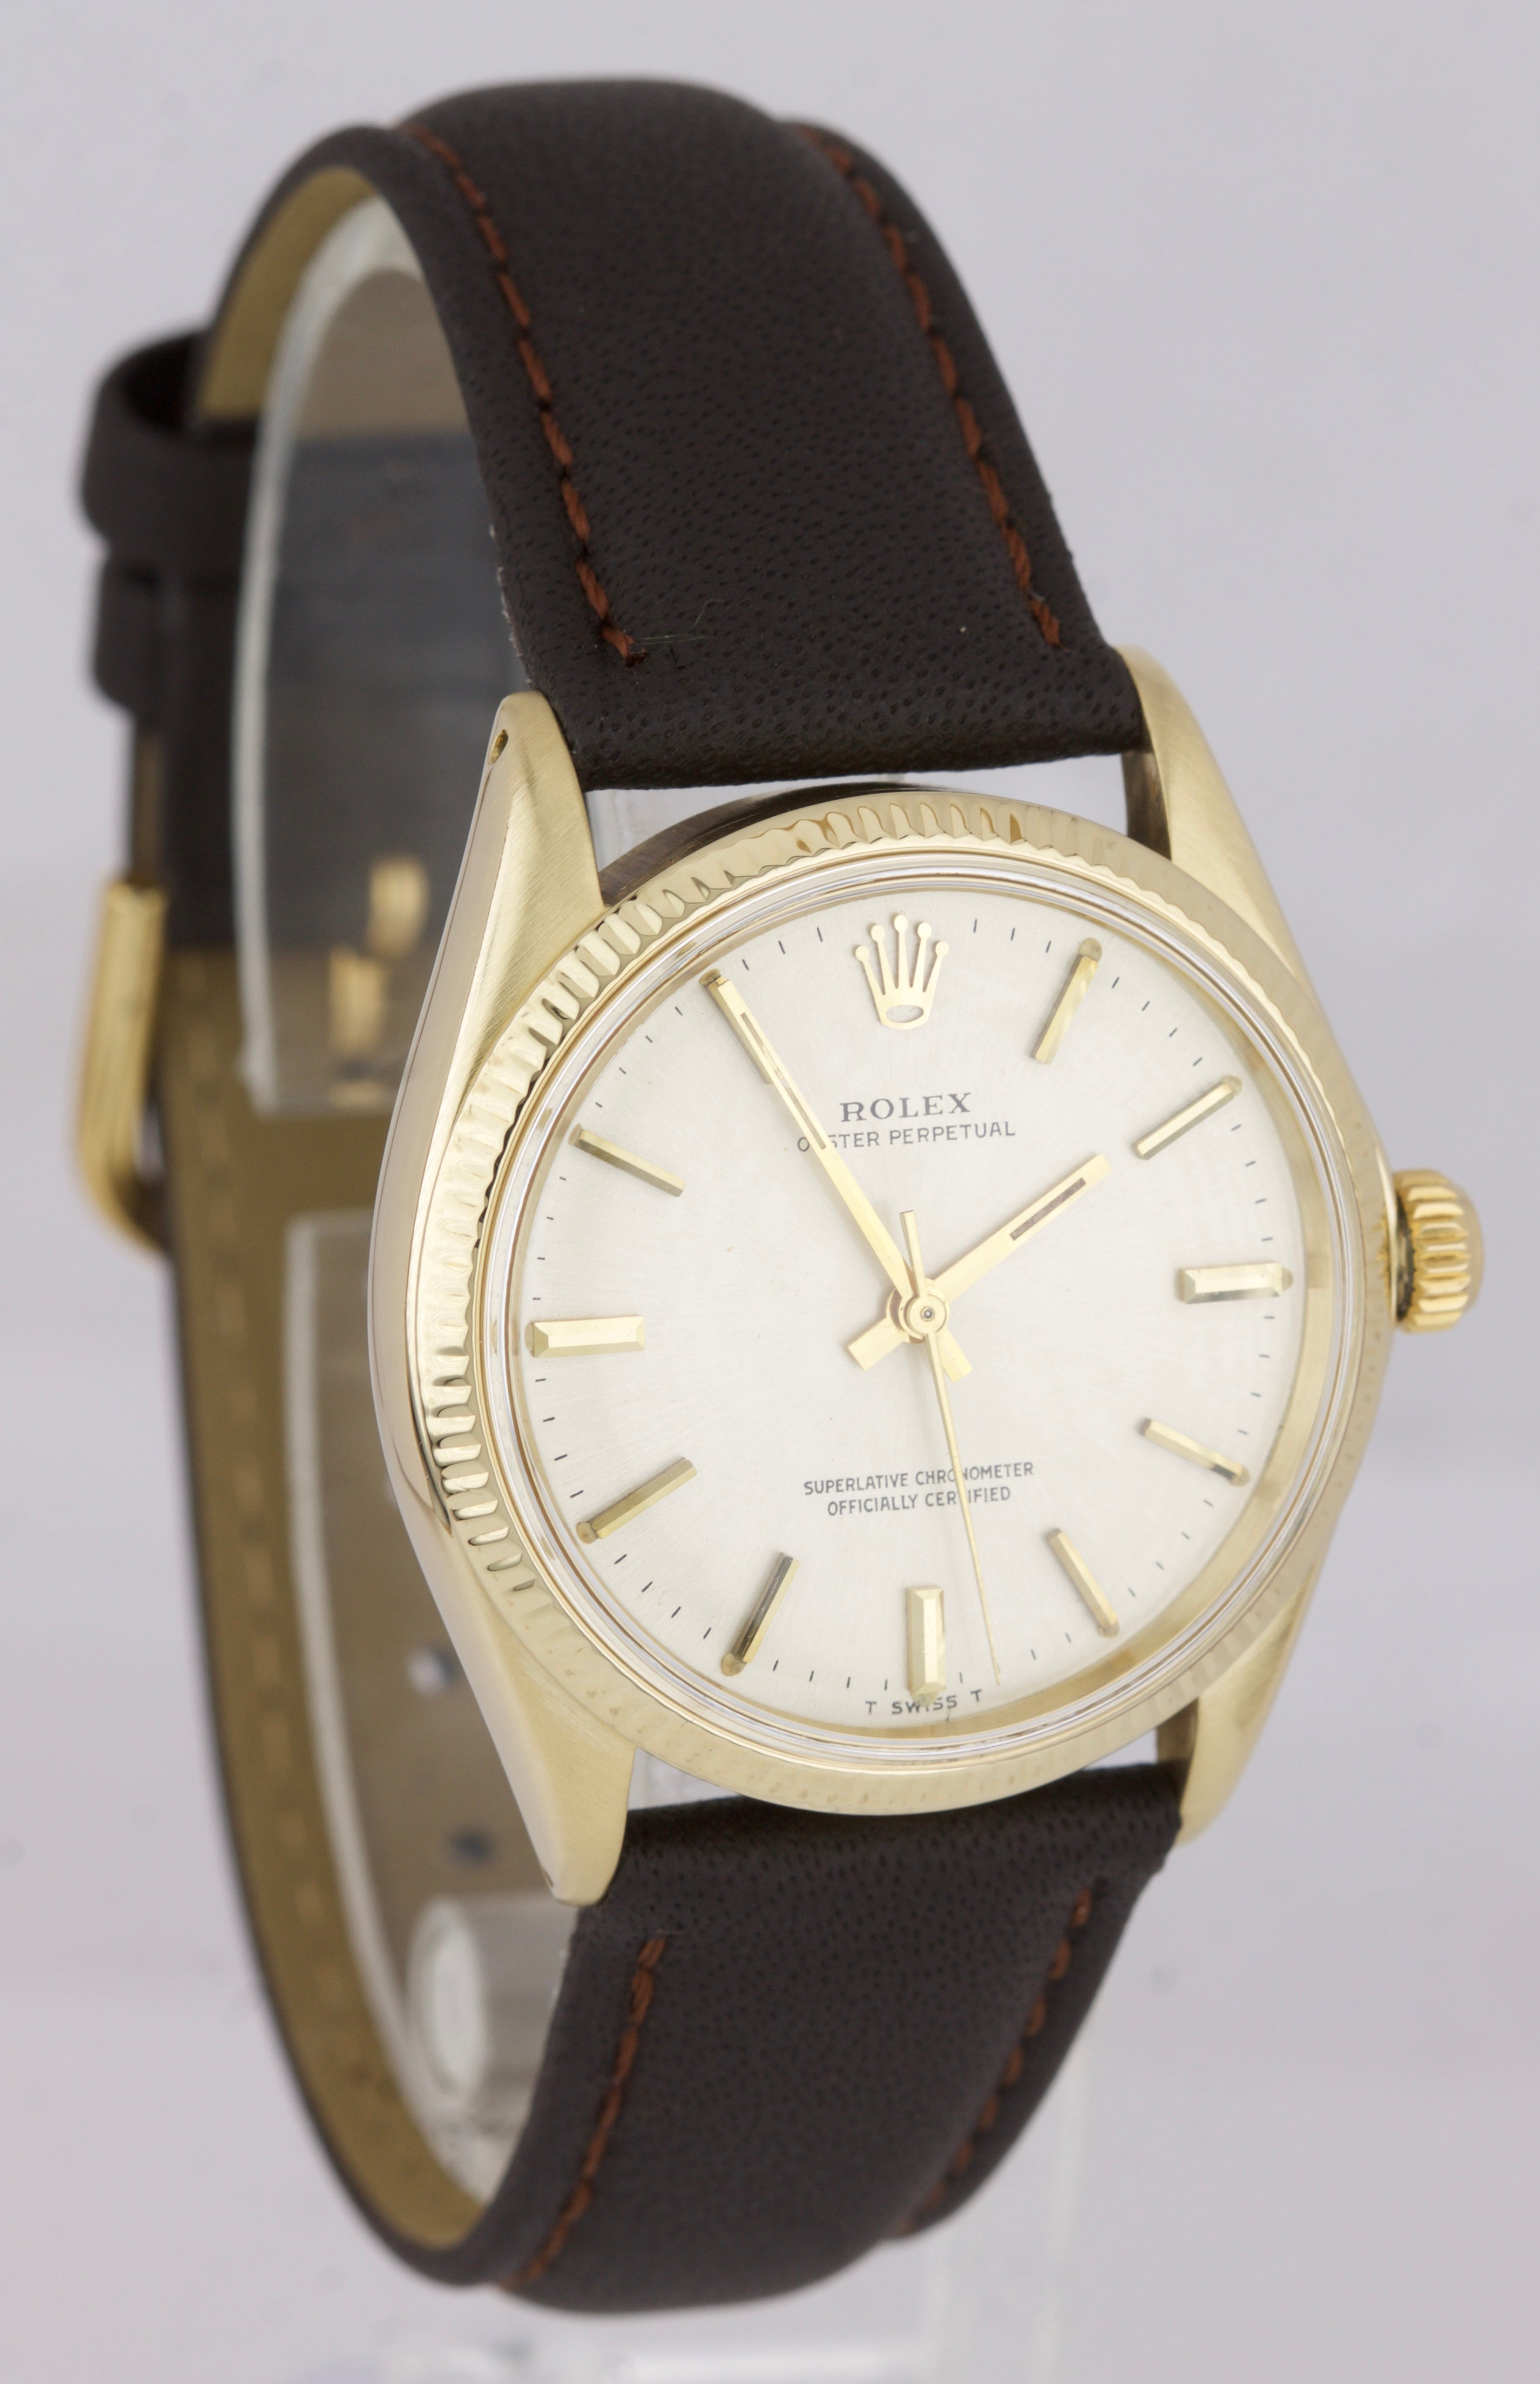 Vintage 1969 Rolex Oyster Perpetual Champagne 18K Yellow Gold Swiss Watch 1005